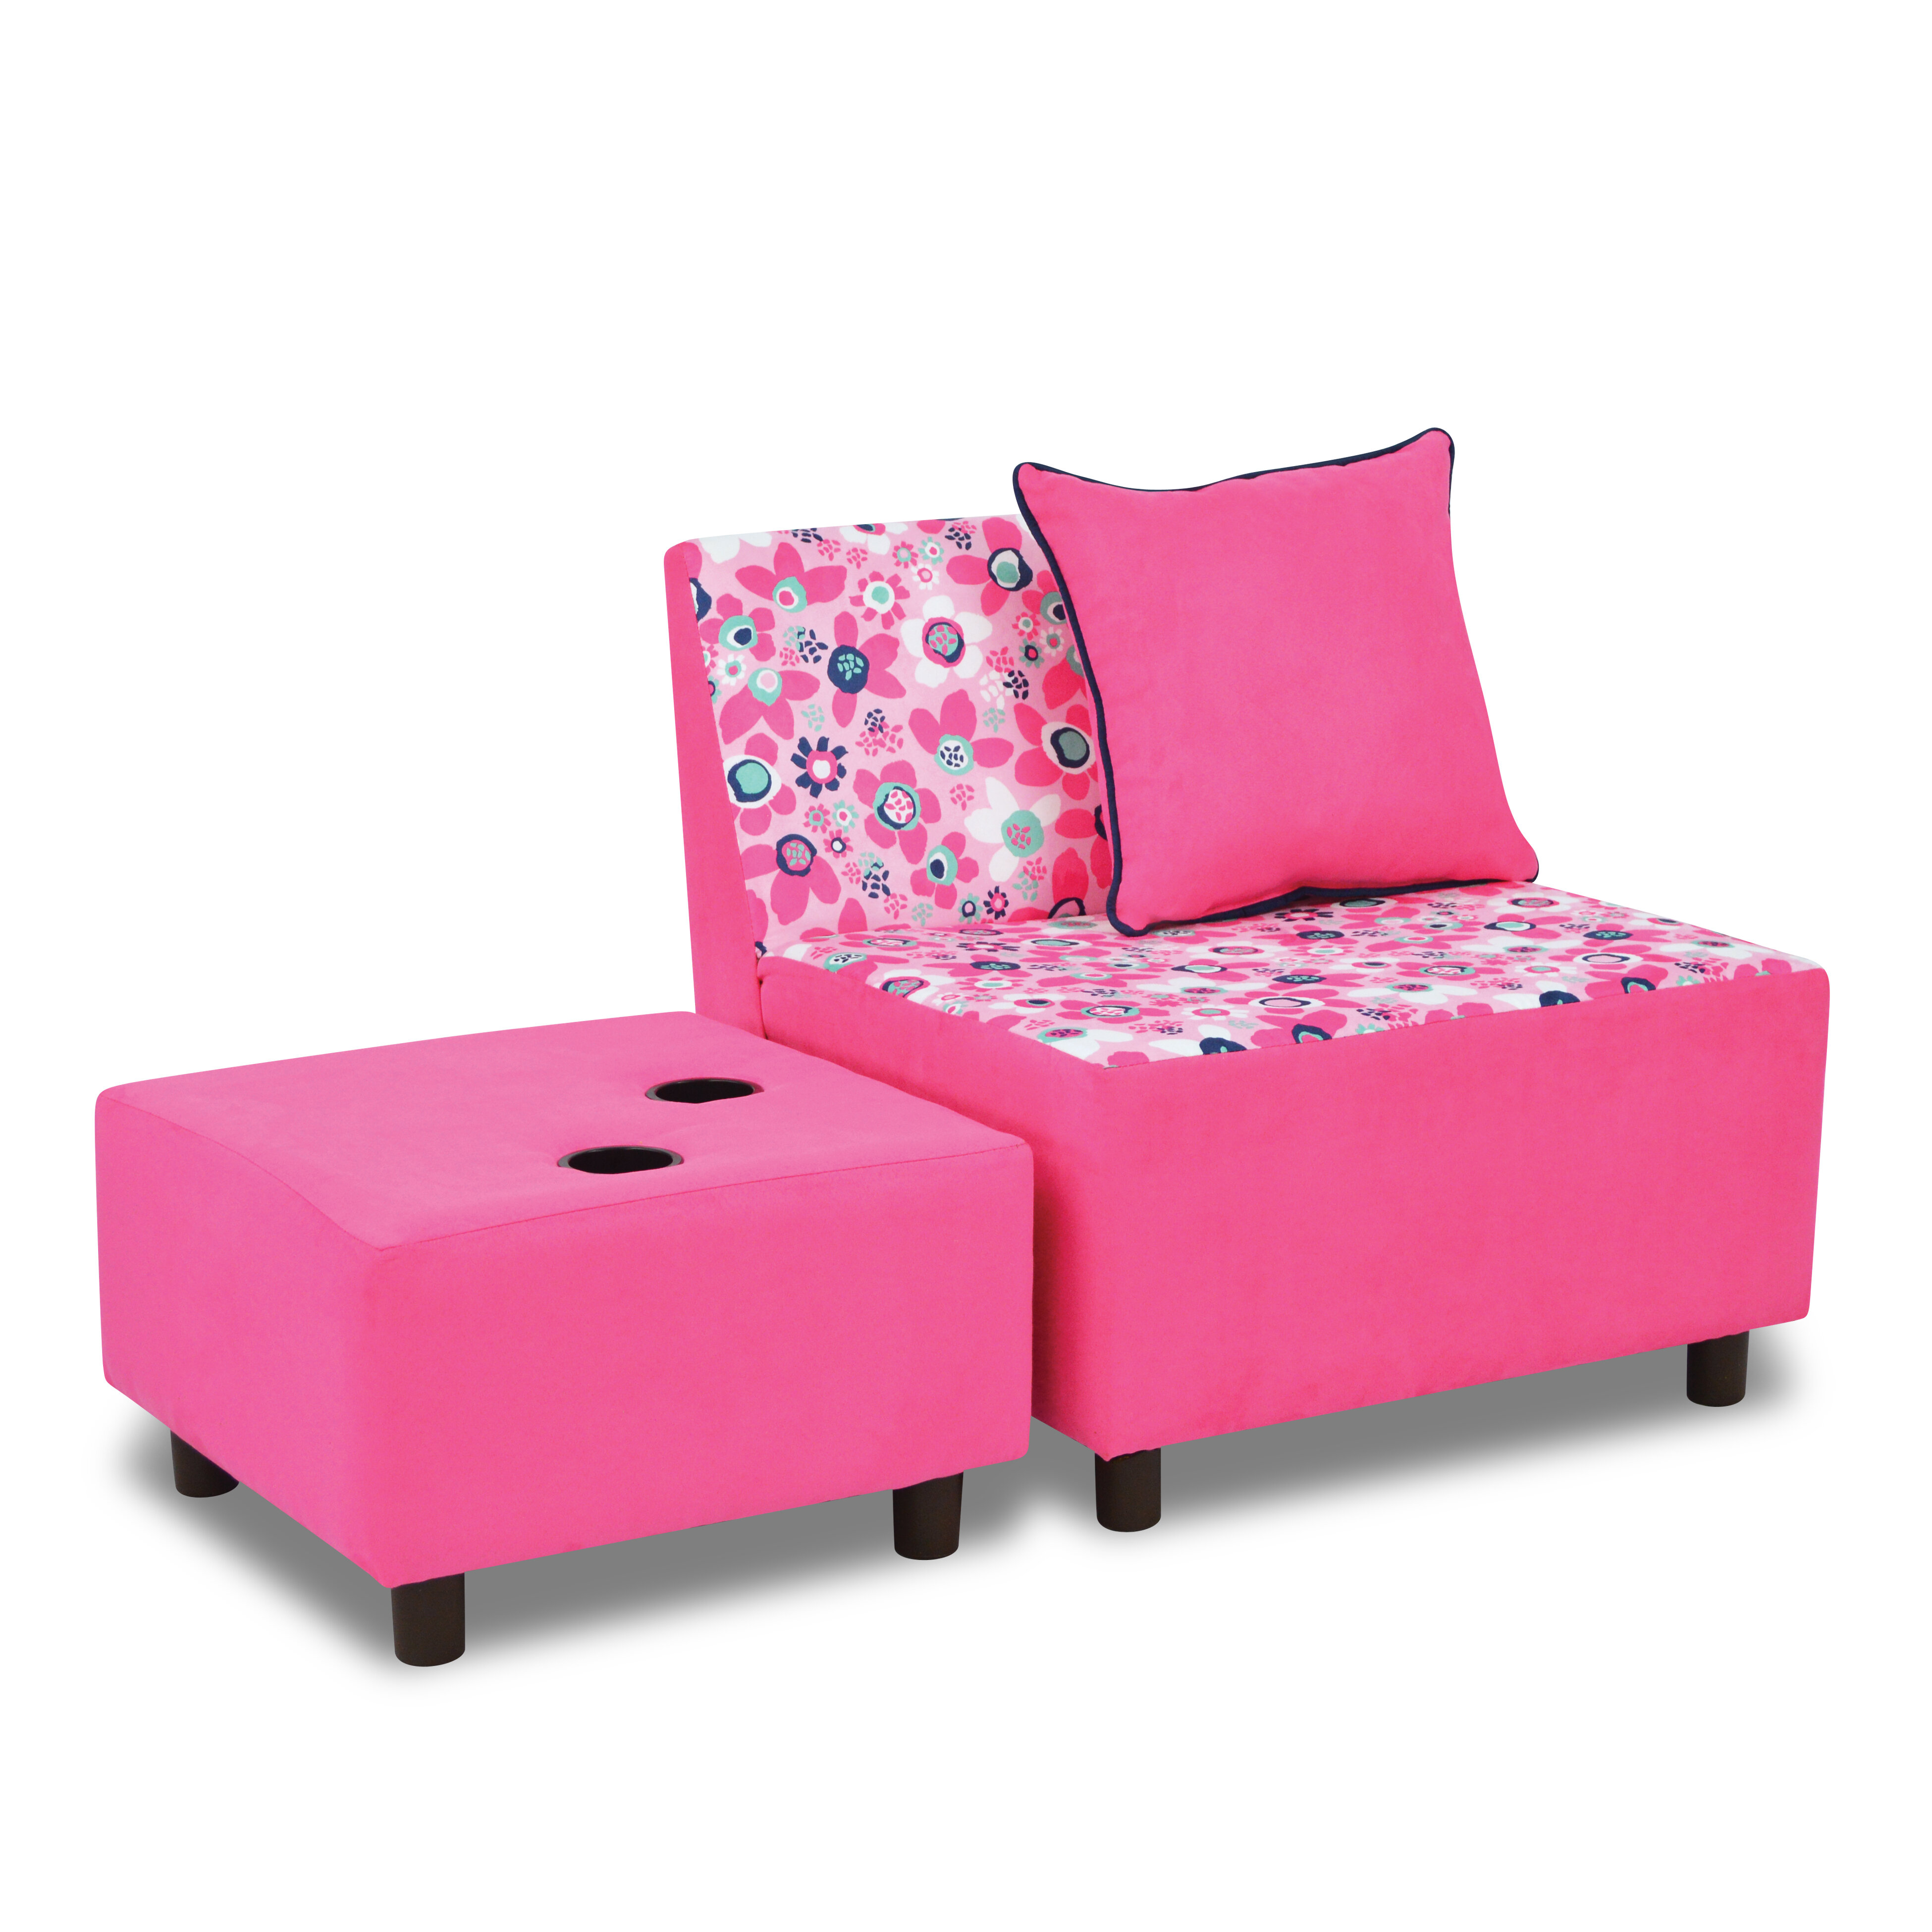 amazon pink couchpink sofa chair chaise com inspirations hot queenove kids size image seat chaiseounge full lounge fascinating loungepink of